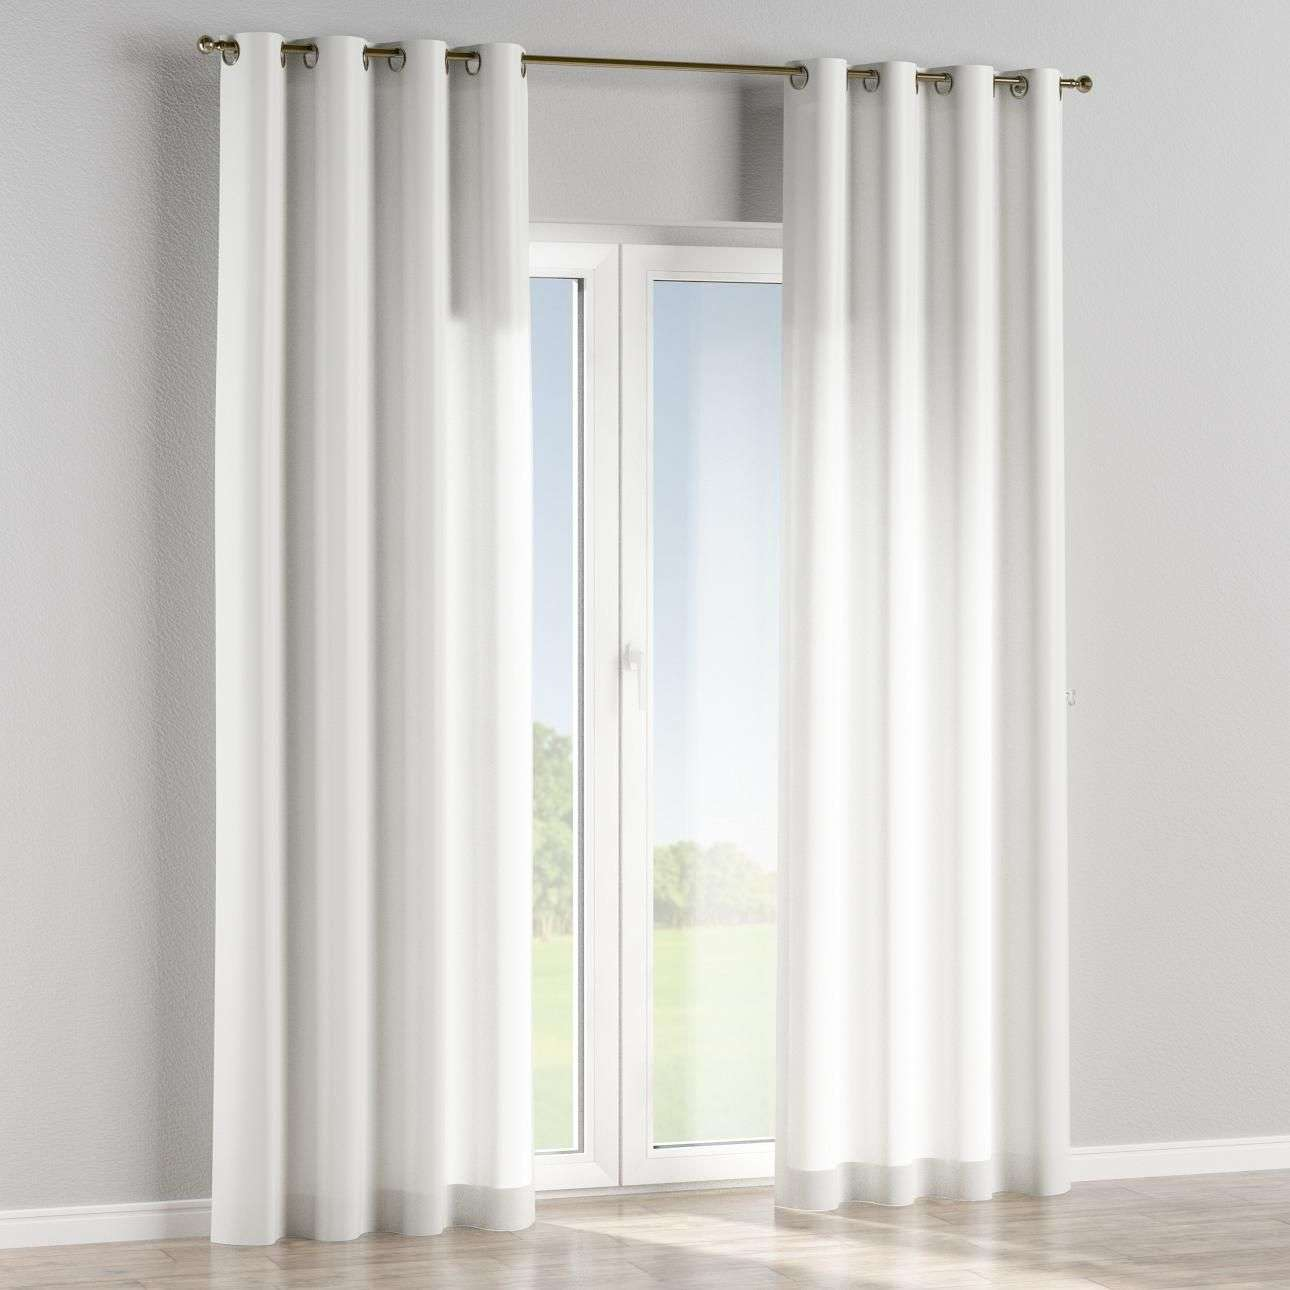 Eyelet curtains in collection Christmas , fabric: 630-27